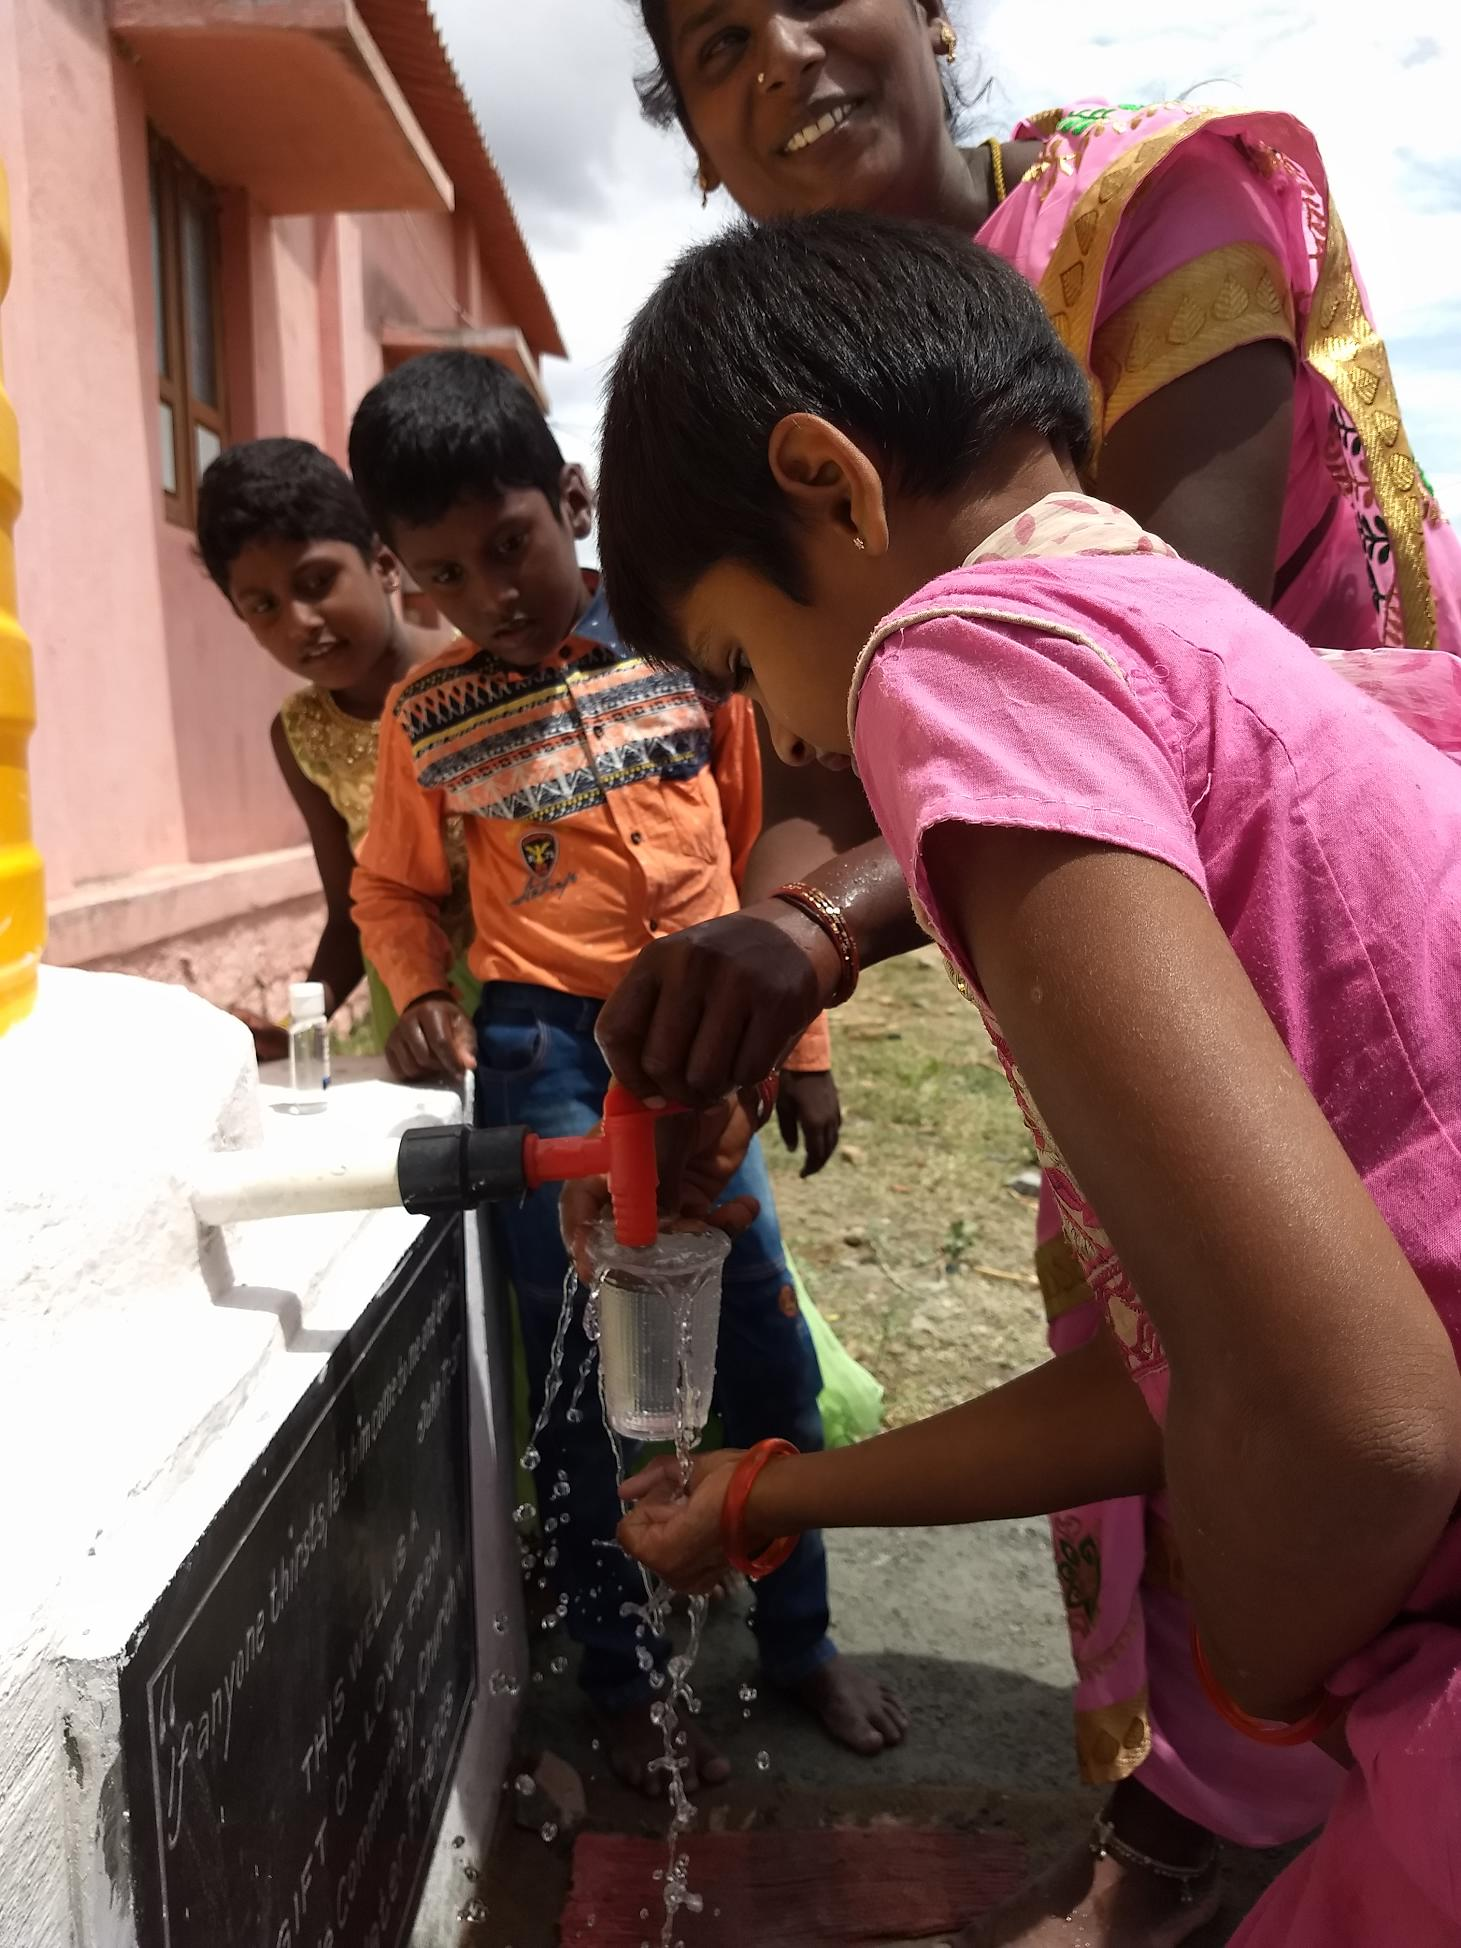 Elated family with water for children